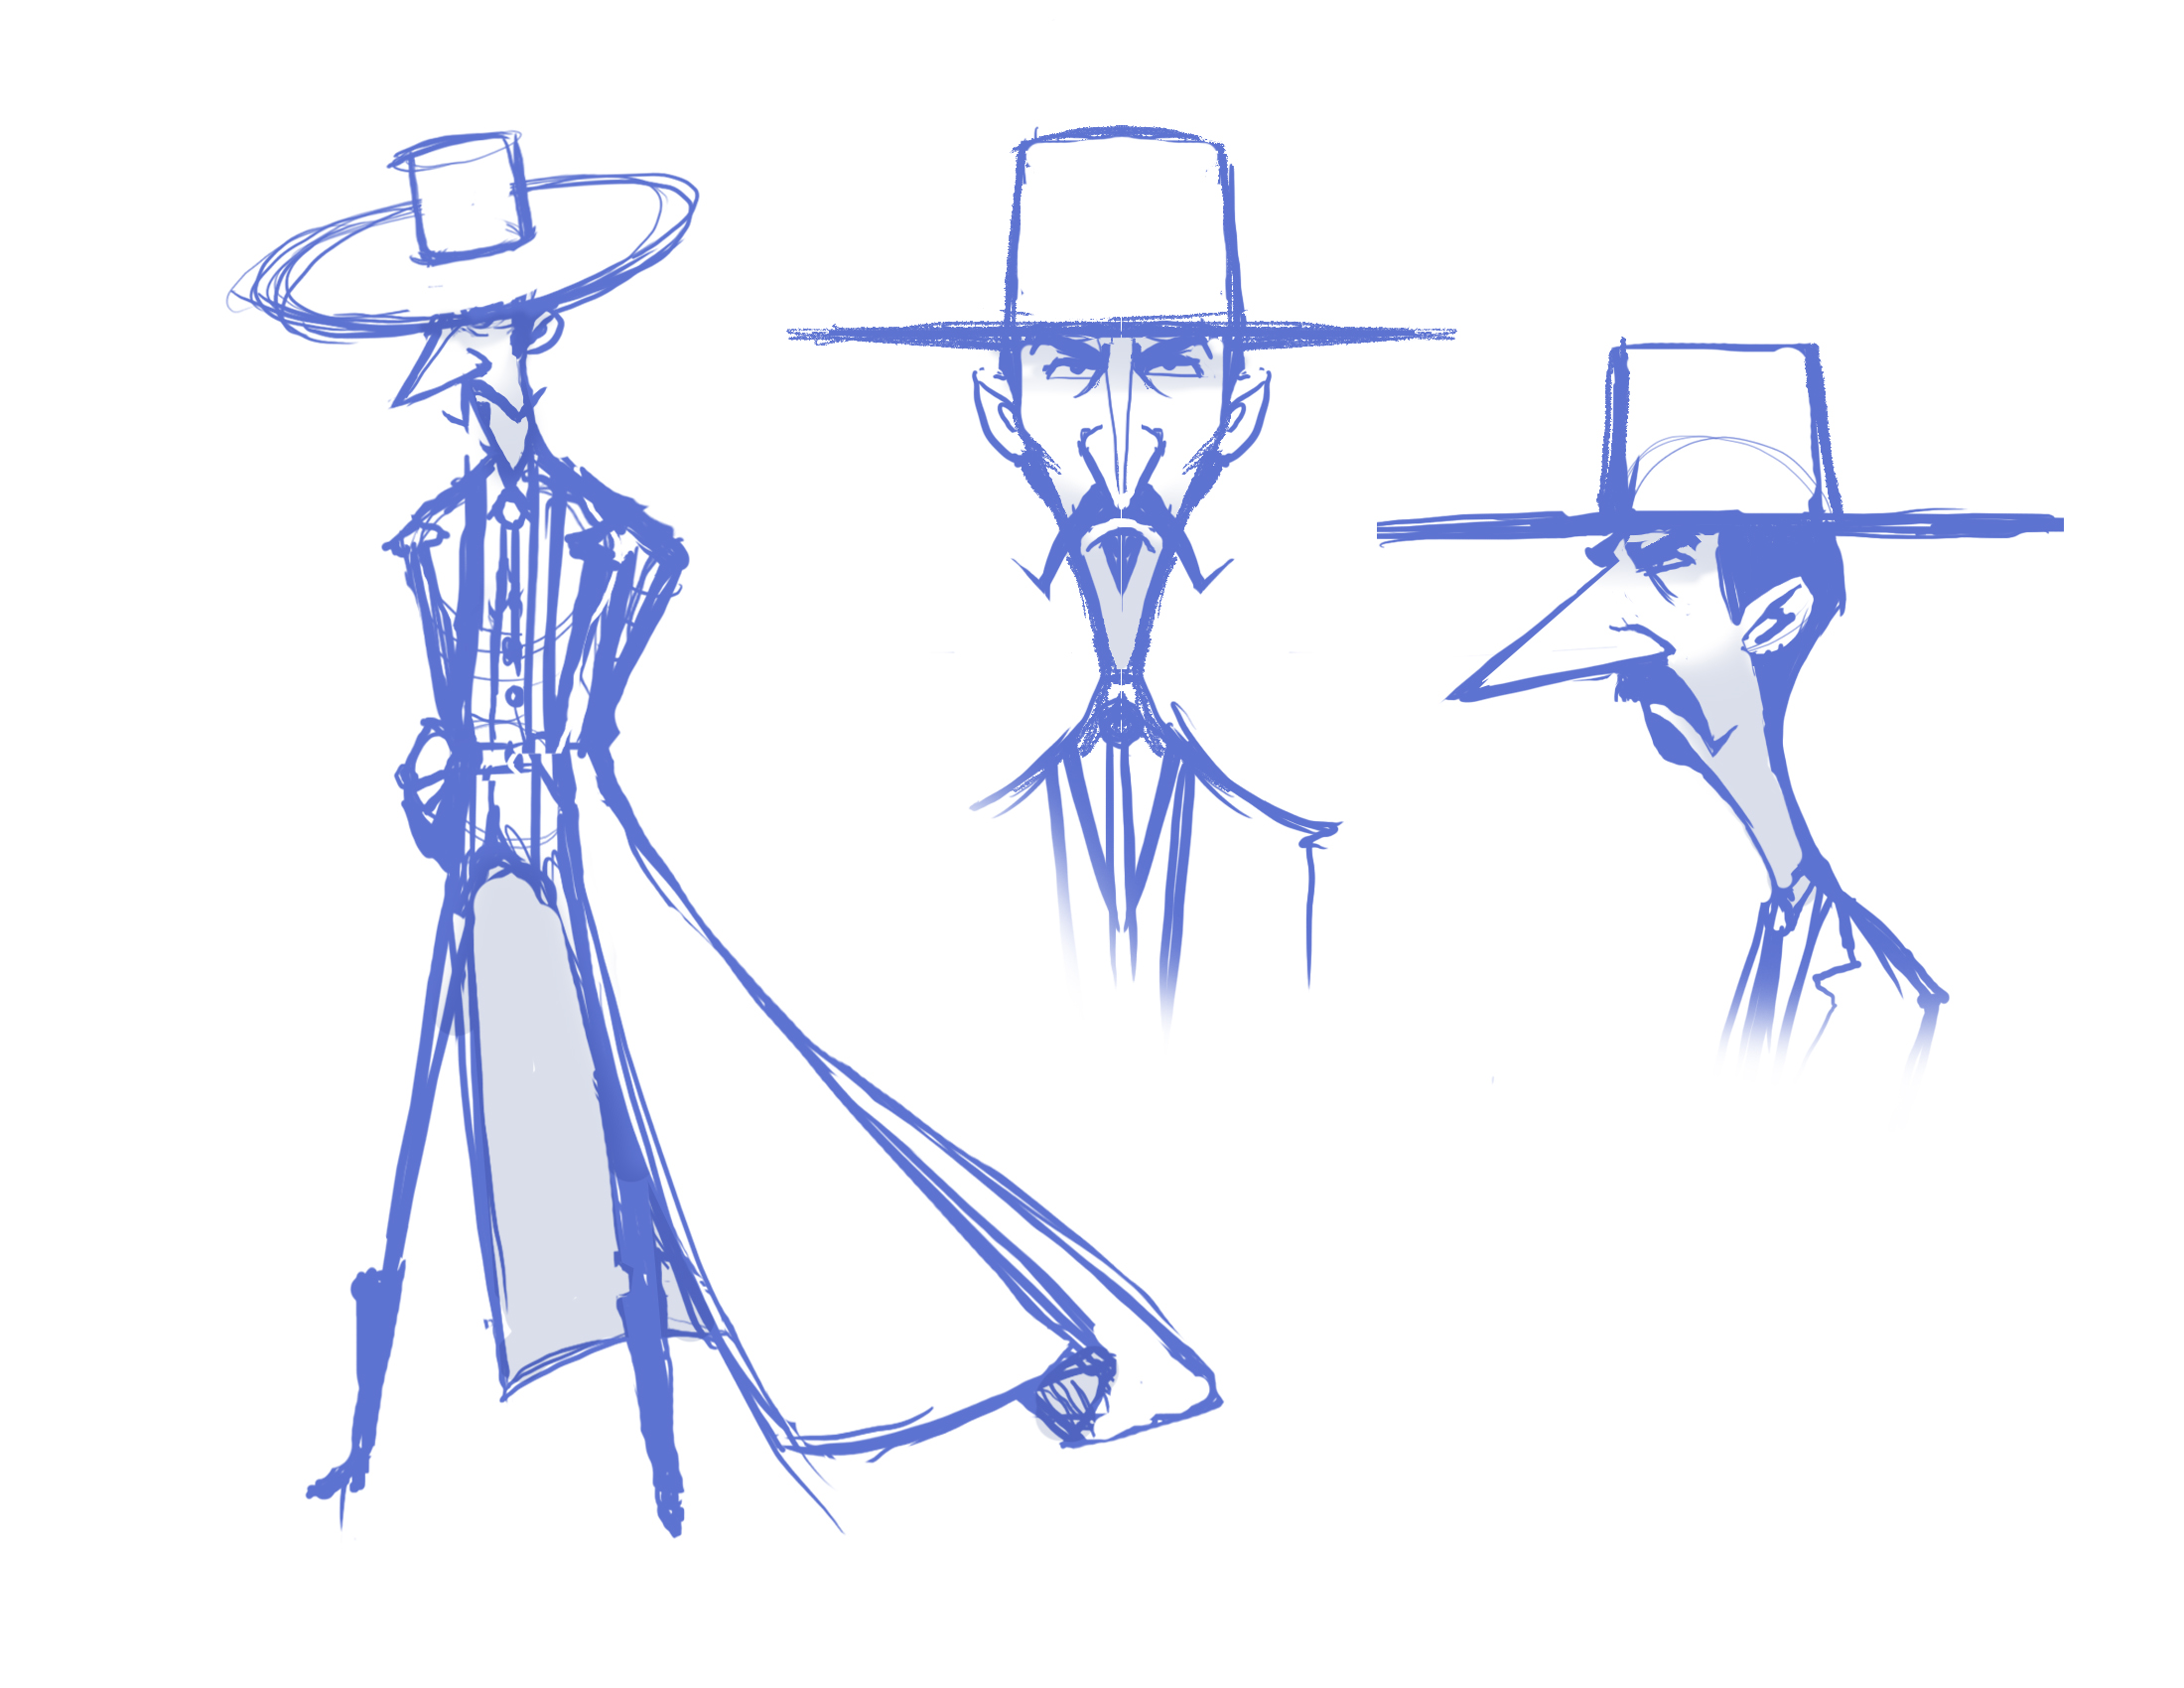 This loose sketch is getting closer to the final design of El Pico